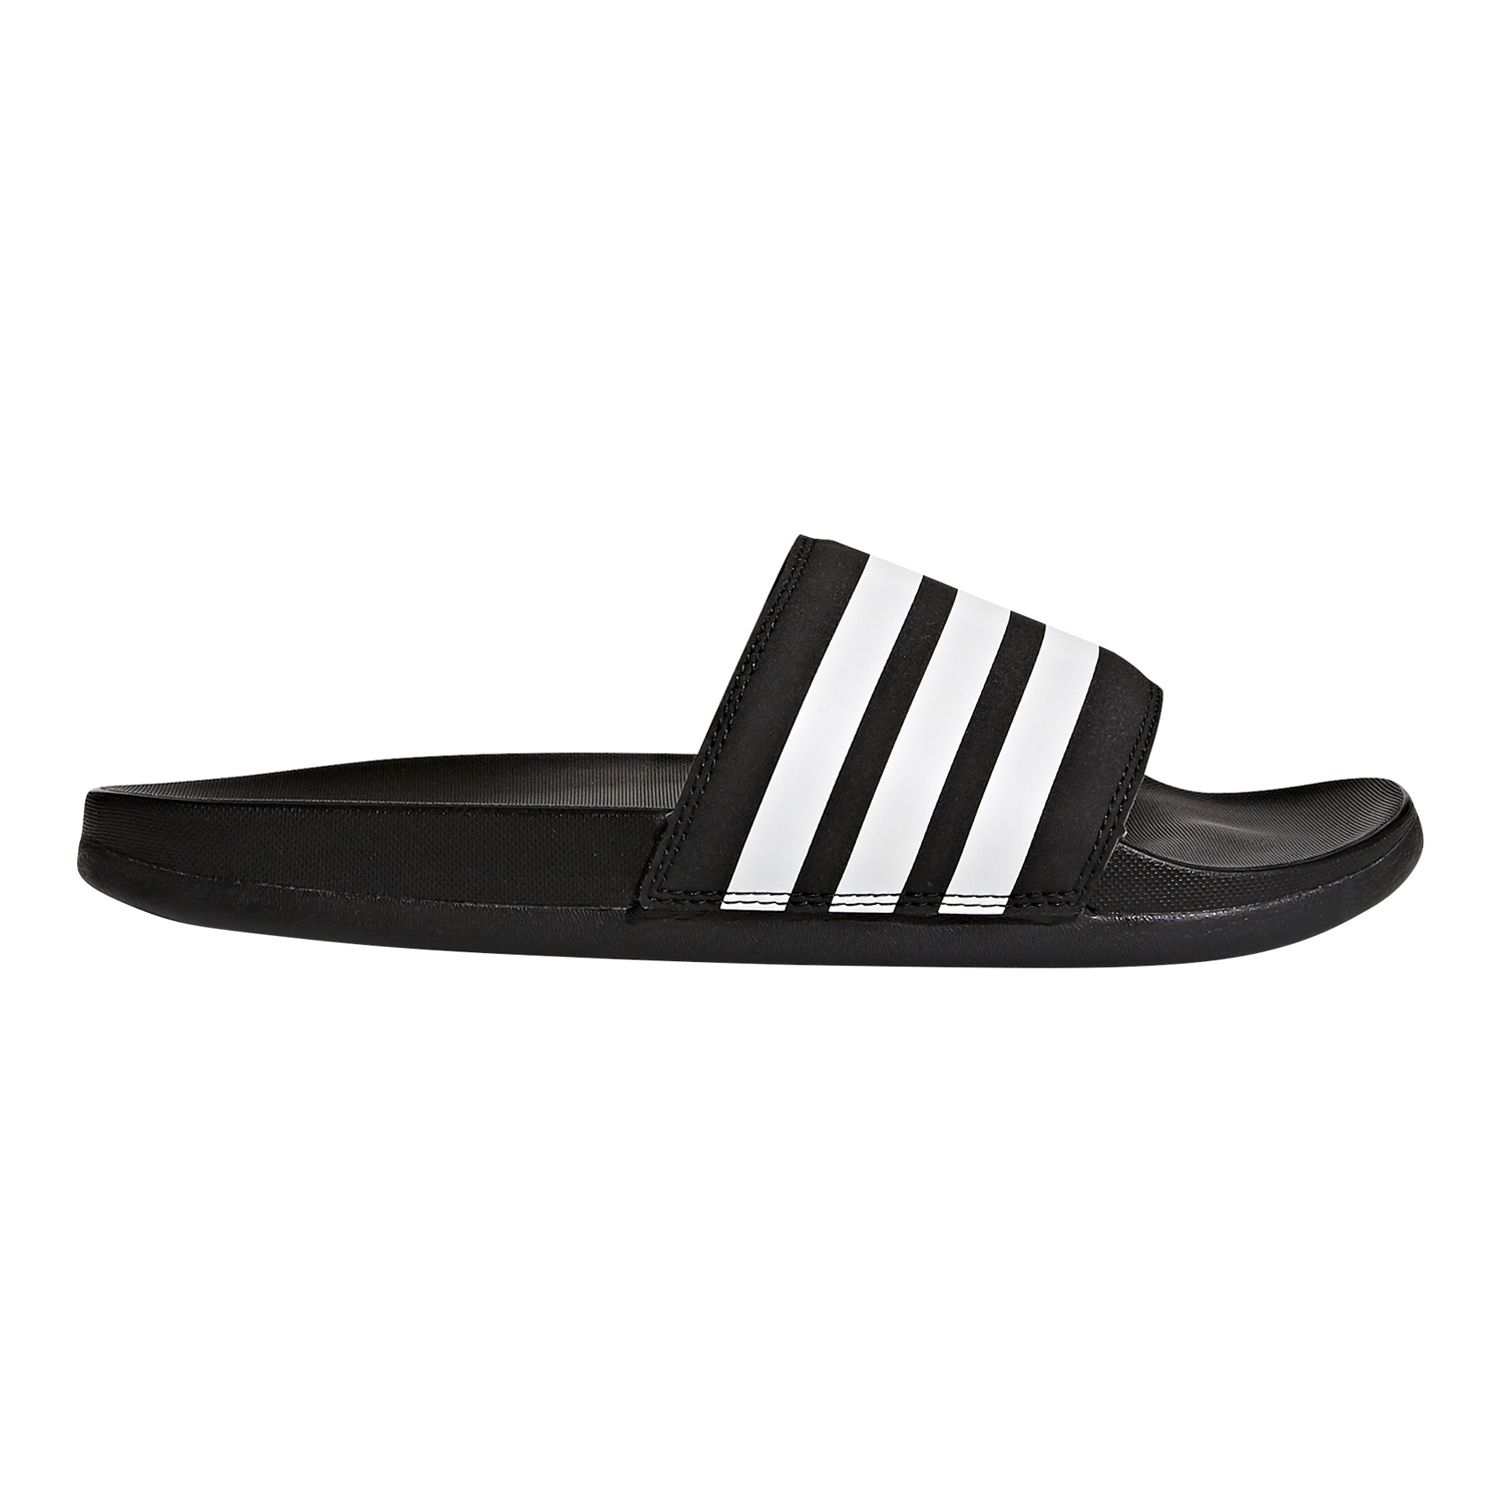 Sabroso prima arpón  adidas Sandals and Slides: Step into Style with adidas Footwear | Kohl's